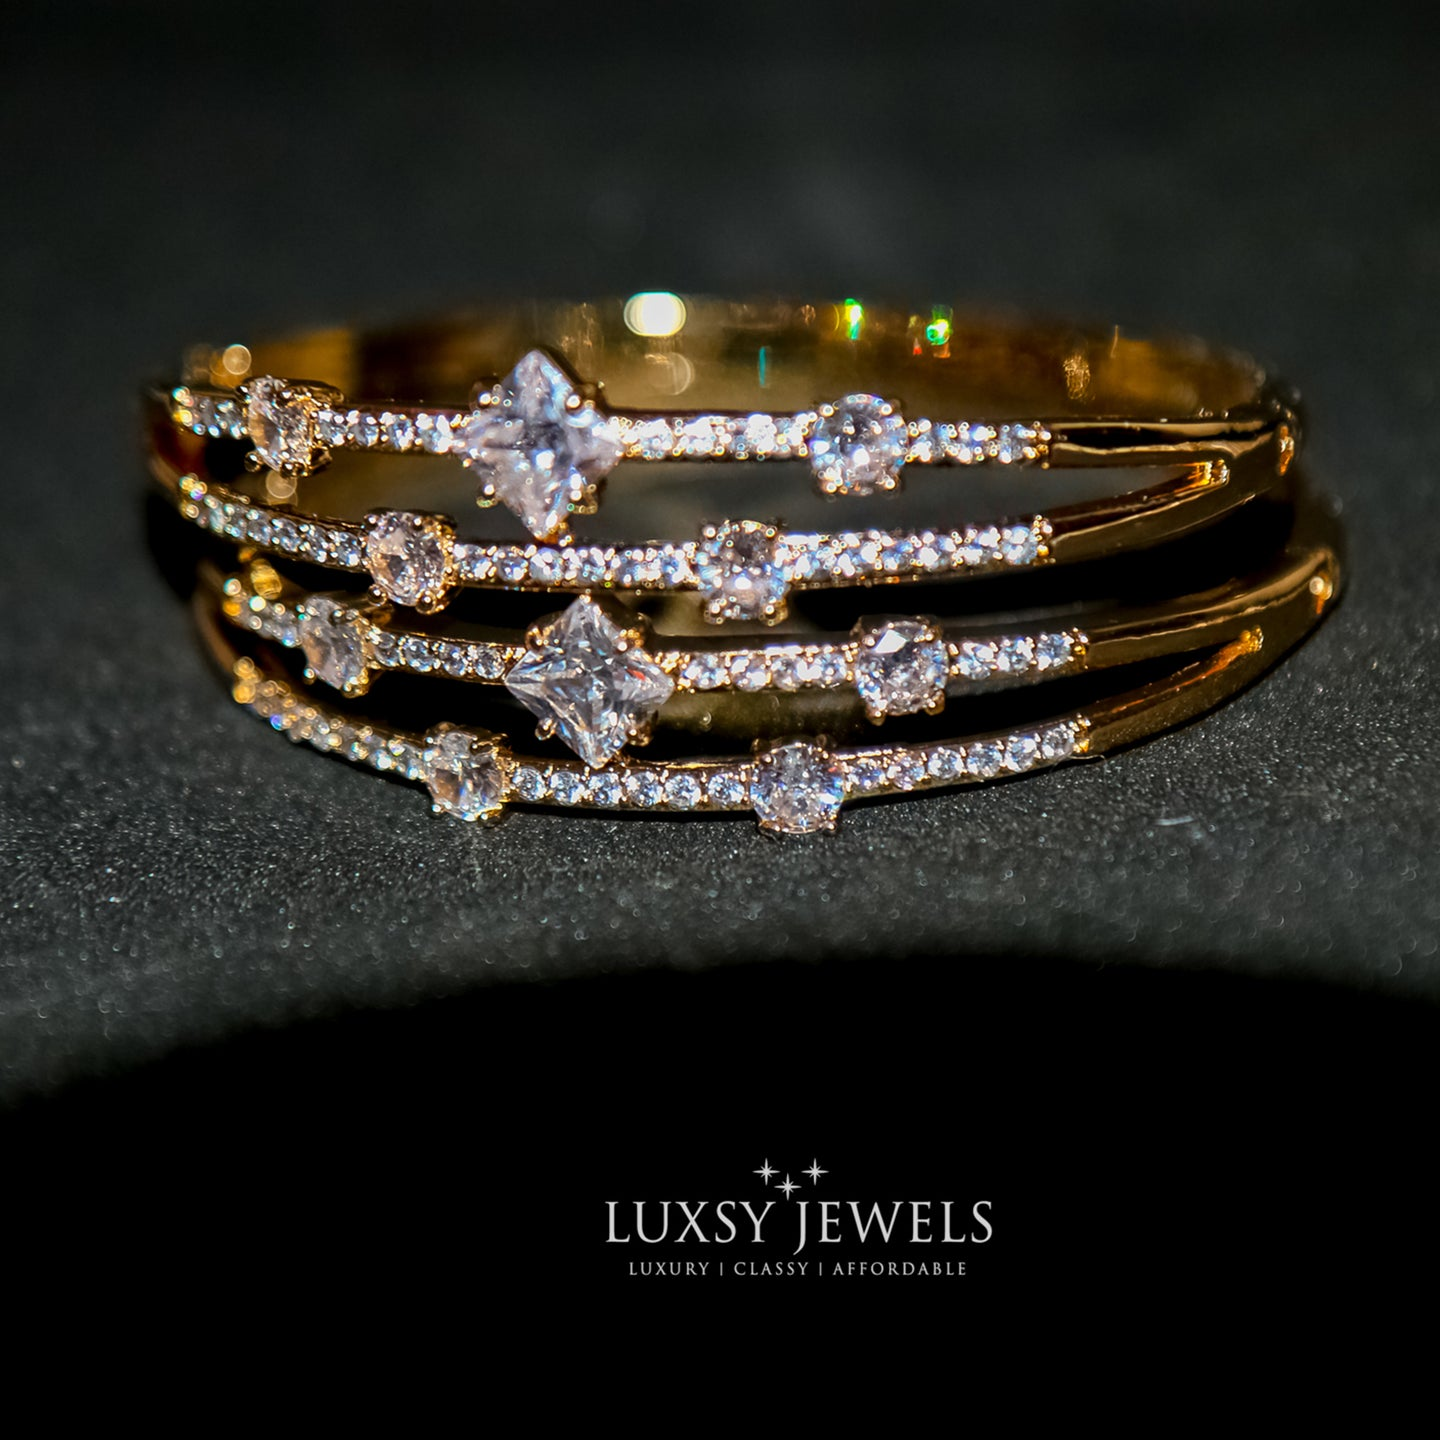 2 Luxsy Crown Bangles - Luxsy Jewels